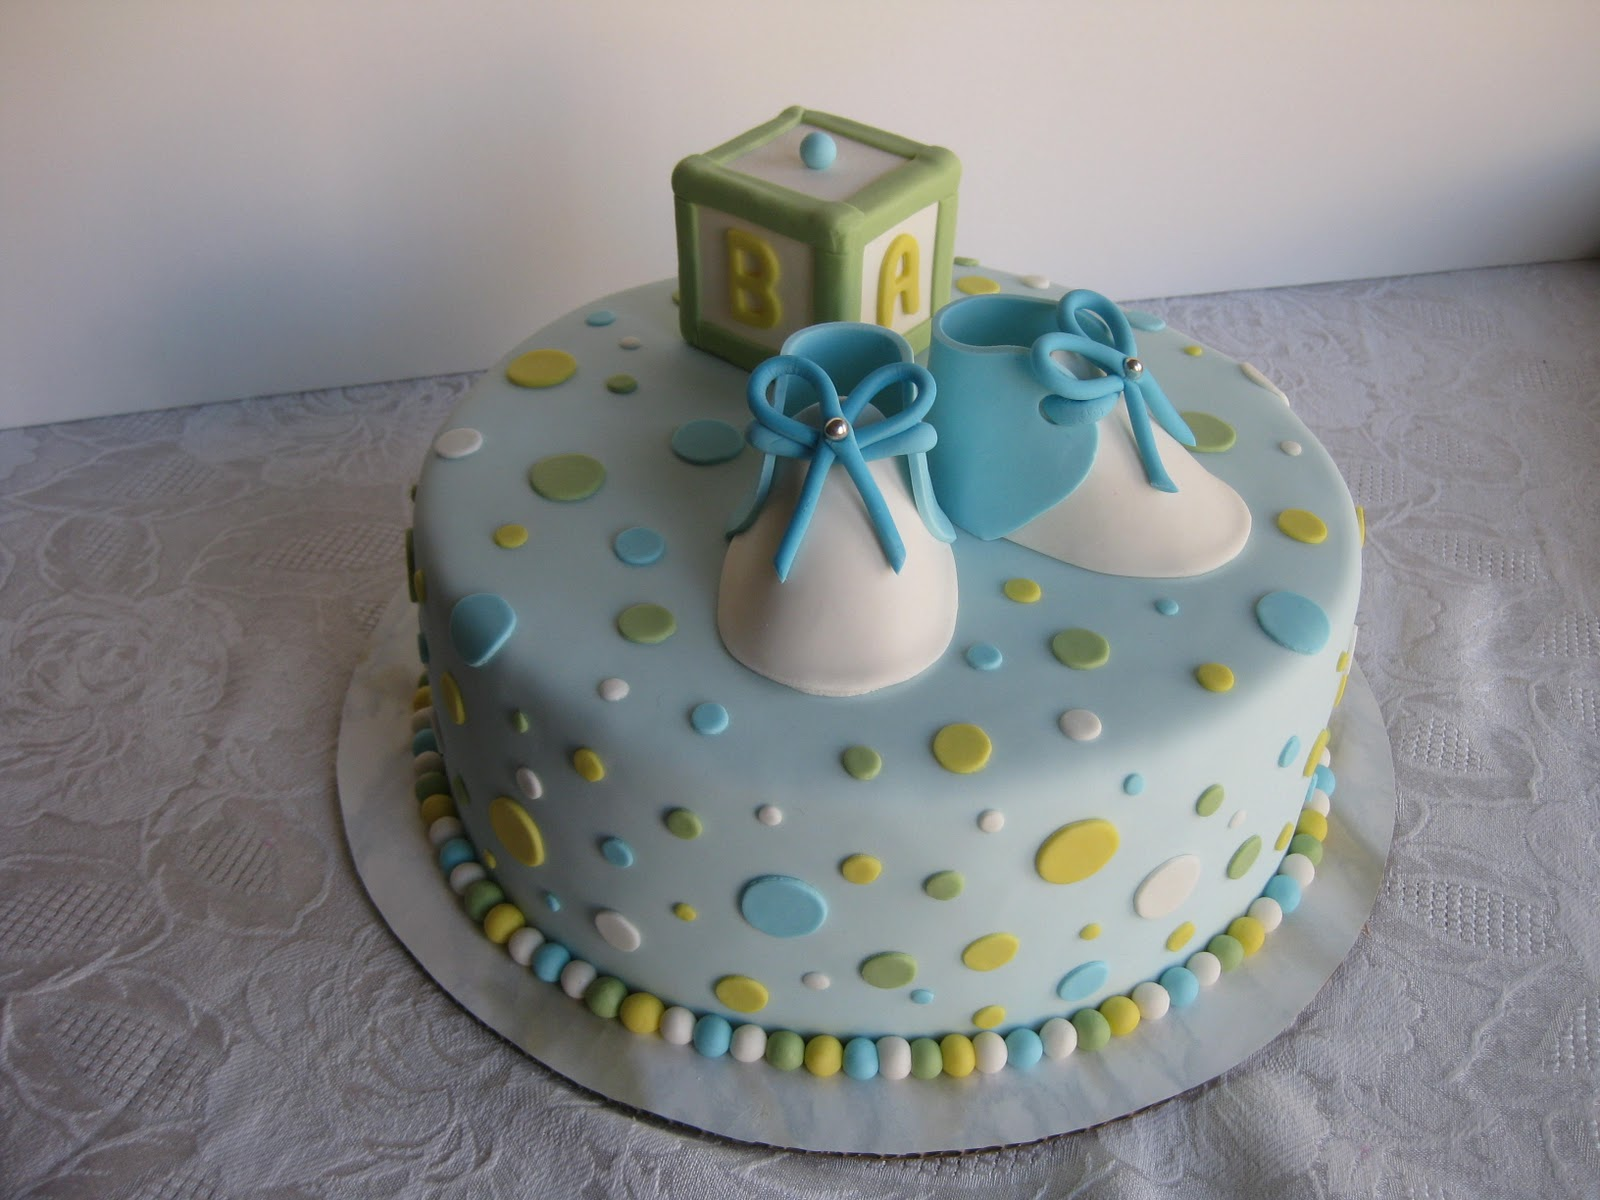 Images Of Newborn Baby Boy Cake : baby-shower-boy-girl-cakes-cupcakes-mumbai-12 - Cakes and ...